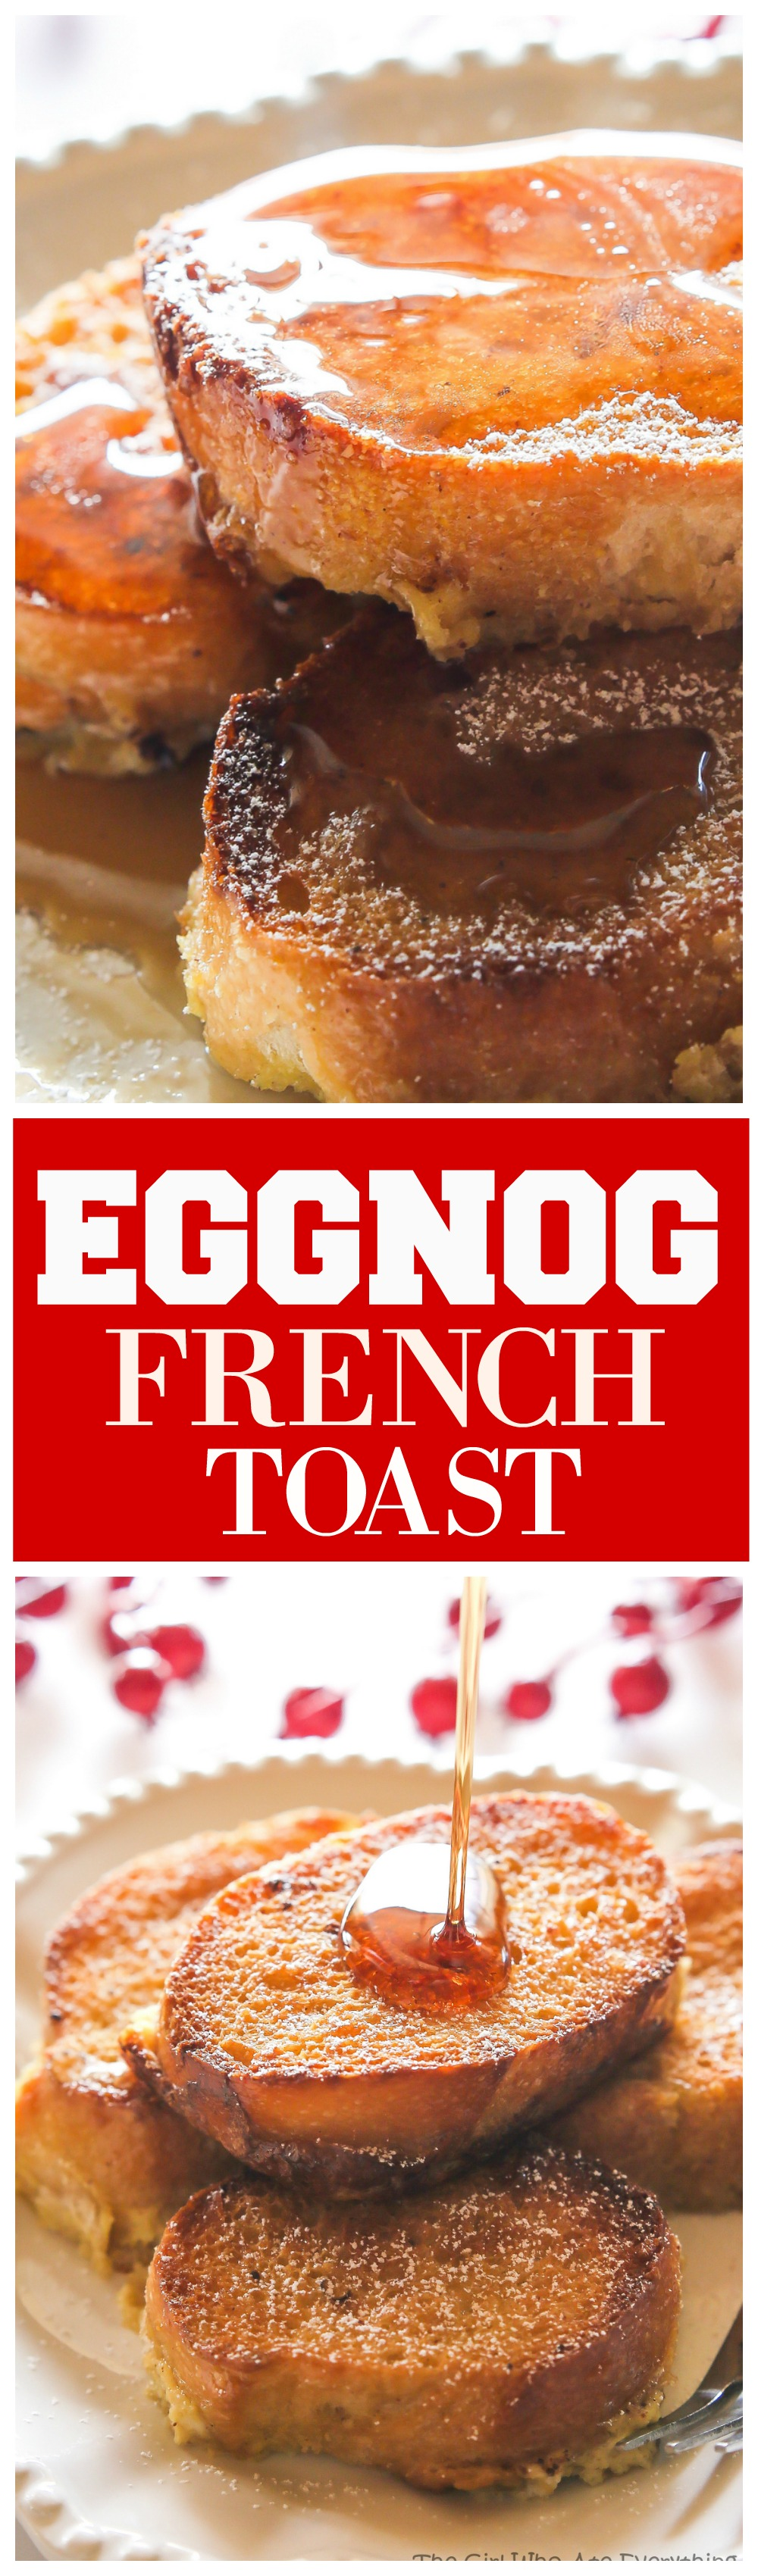 Eggnog French Toast - bread soaked overnight in an eggnog mixture and baked in the morning. the-girl-who-ate-everything.com